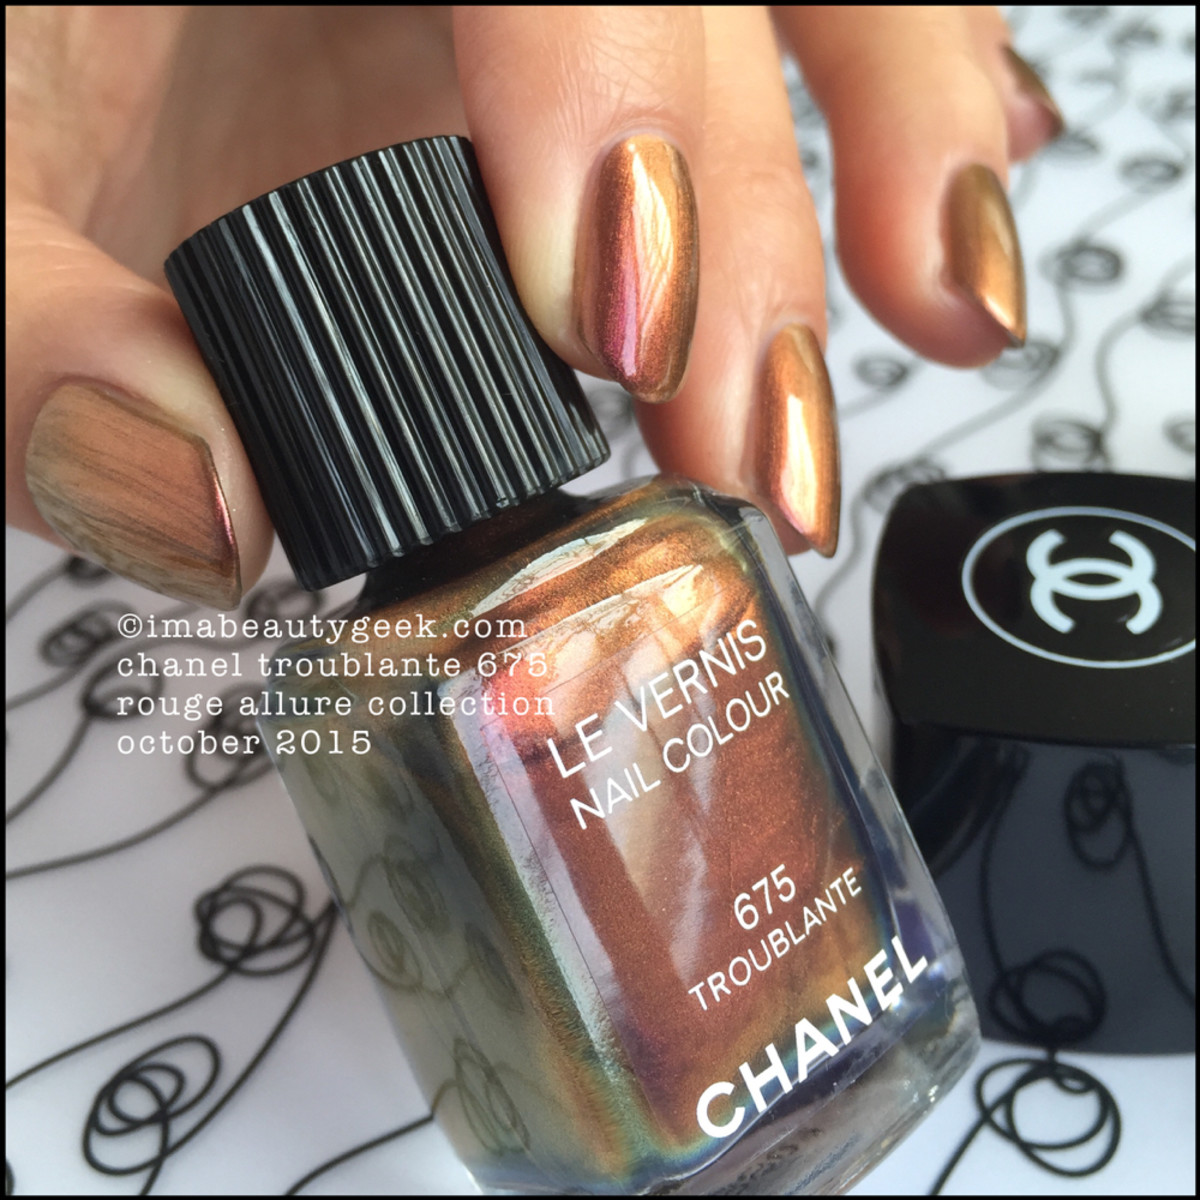 Chanel Troublante 675 Le Vernis Rouge Allure 2015 _ 1